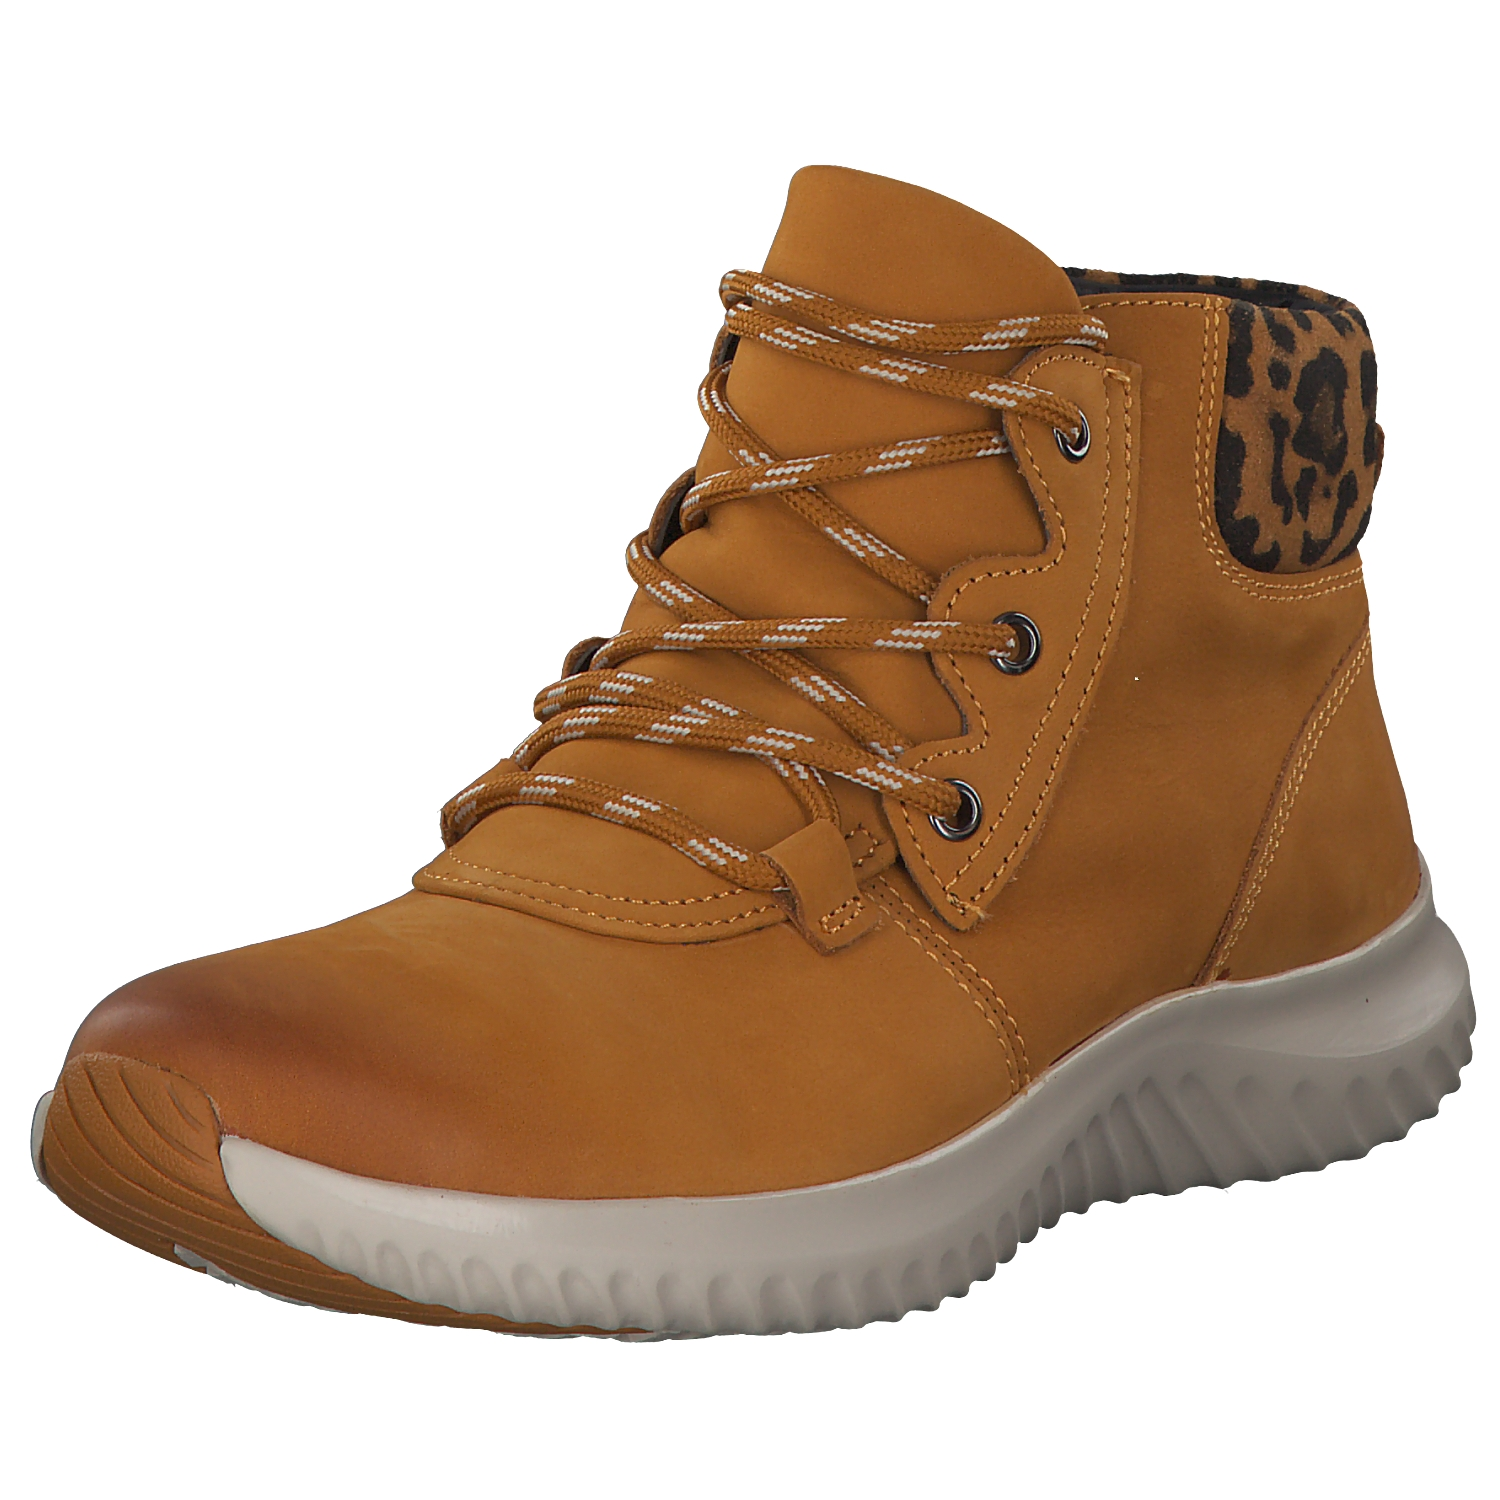 Details New About Ankle 92 Winter Boots Ladies 885 Gabor Yellow Curry 36 PNnO8XZ0wk